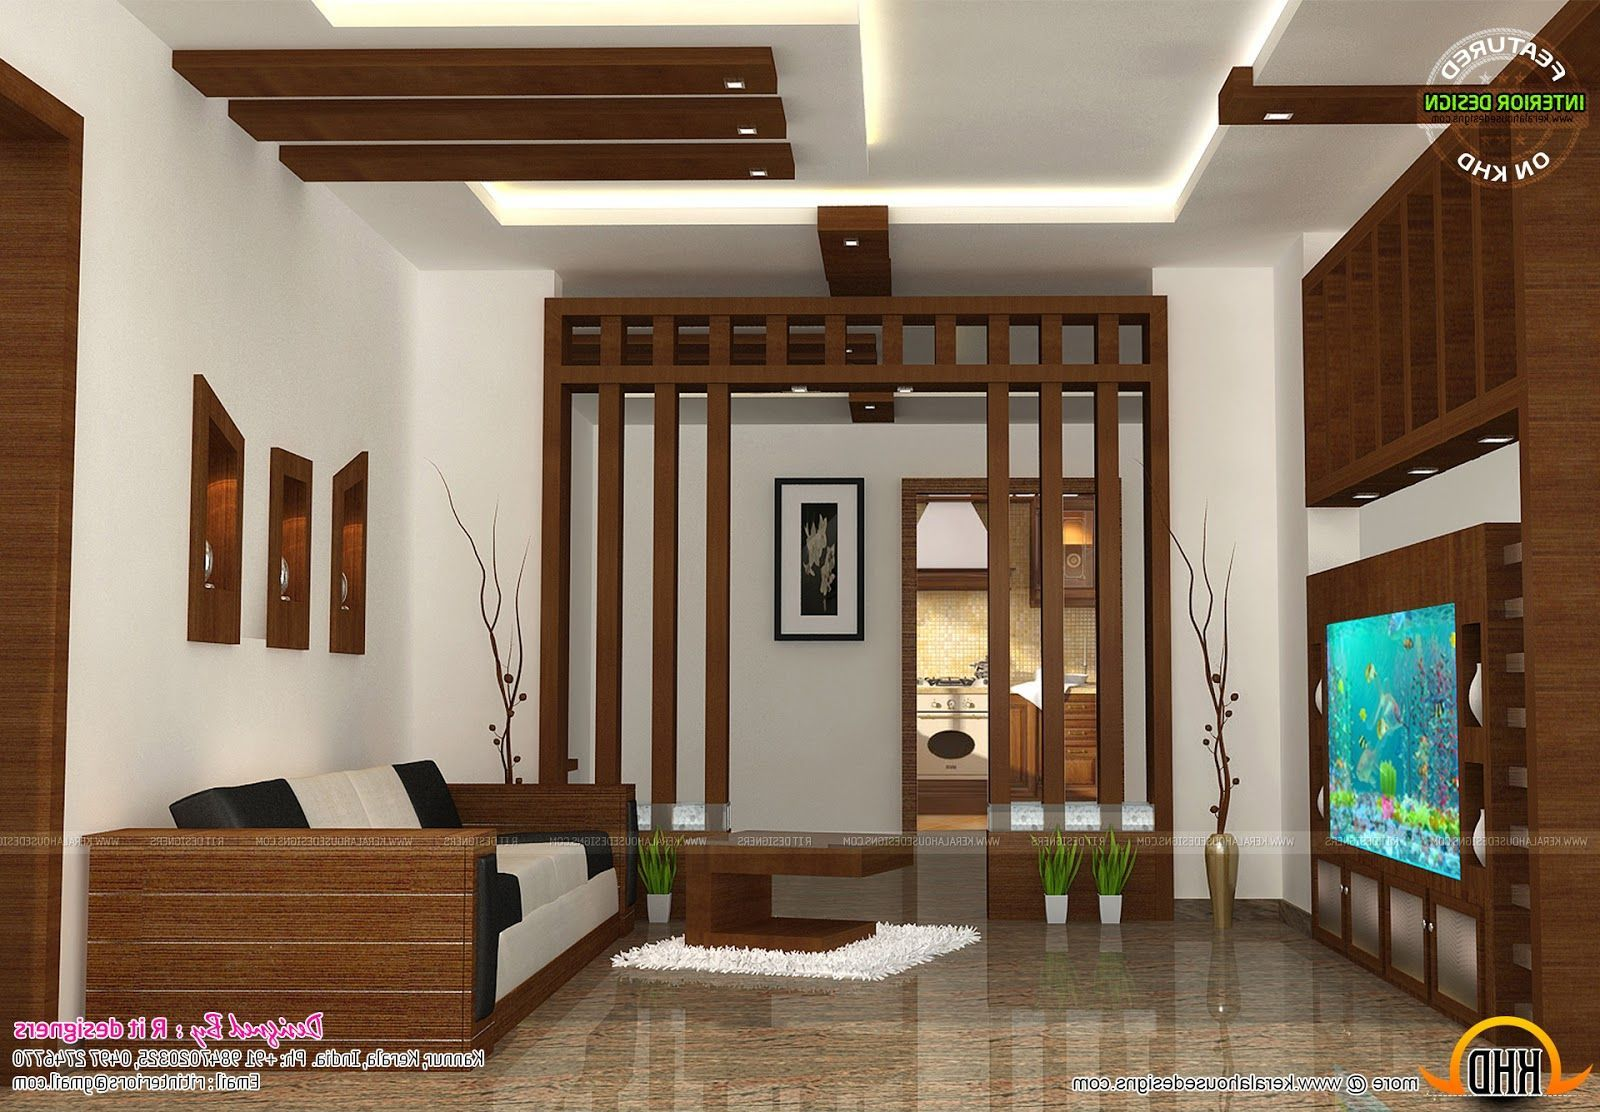 Home Interior Design Ideas Kerala: Interior Design Living Room Kerala